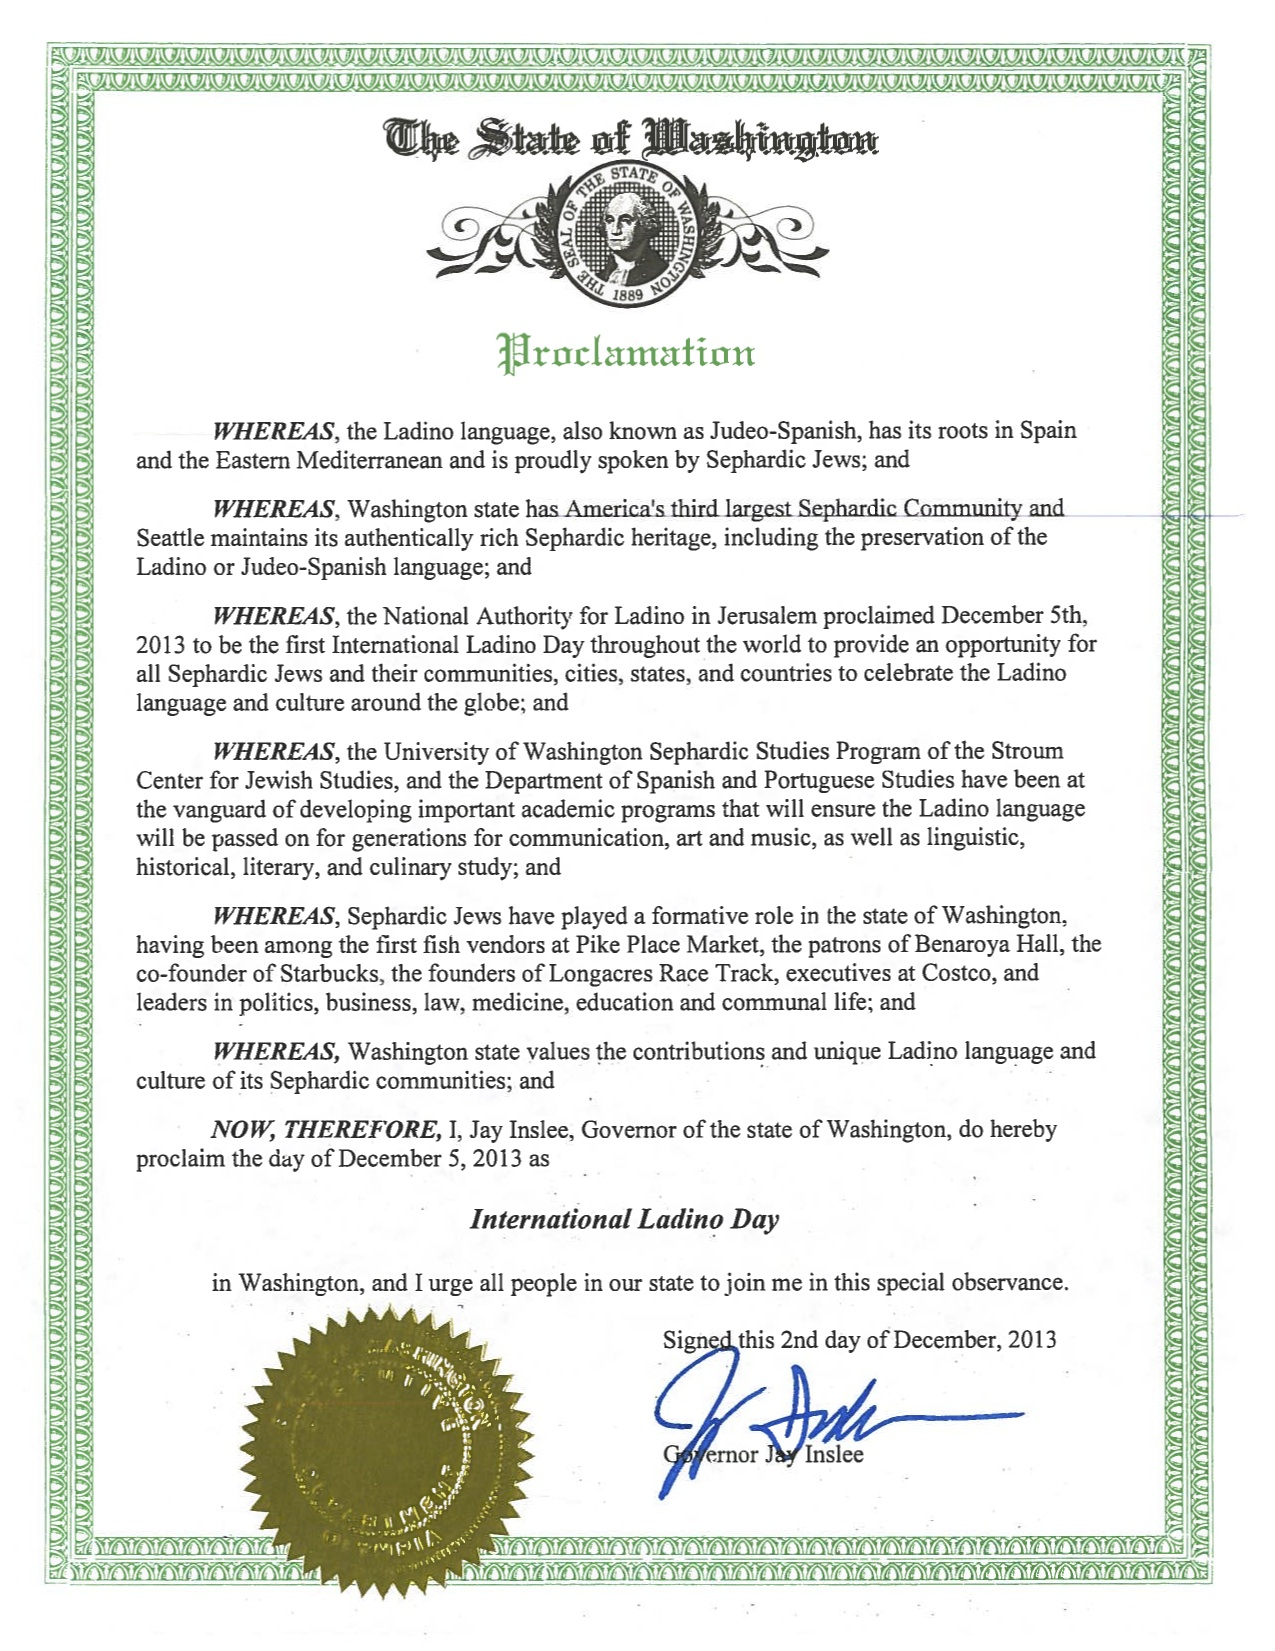 International Ladino Day Proclamation by Washington State Governor Jay Inslee, December 2nd 2013.